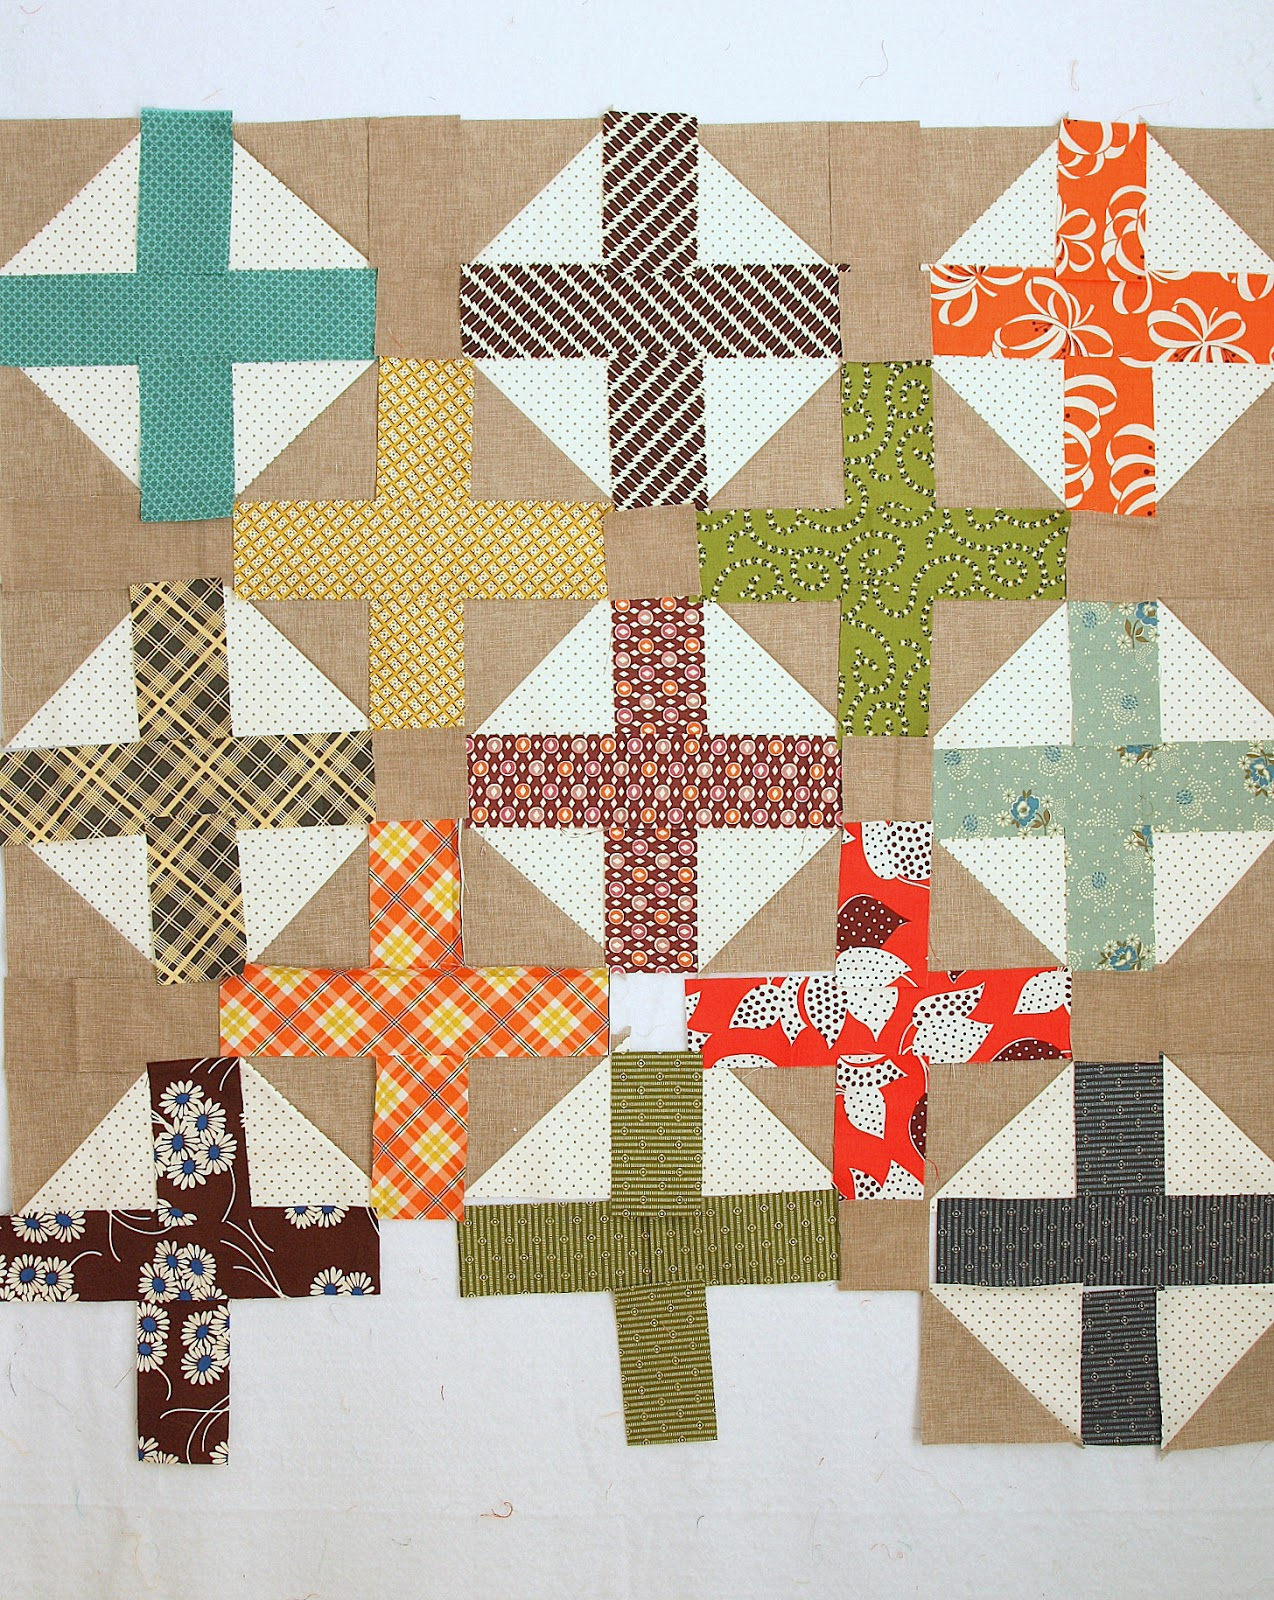 New Quilt Pattern for Sale - Hopscotch - Diary of a Quilter - a ... : hopscotch quilt shop - Adamdwight.com